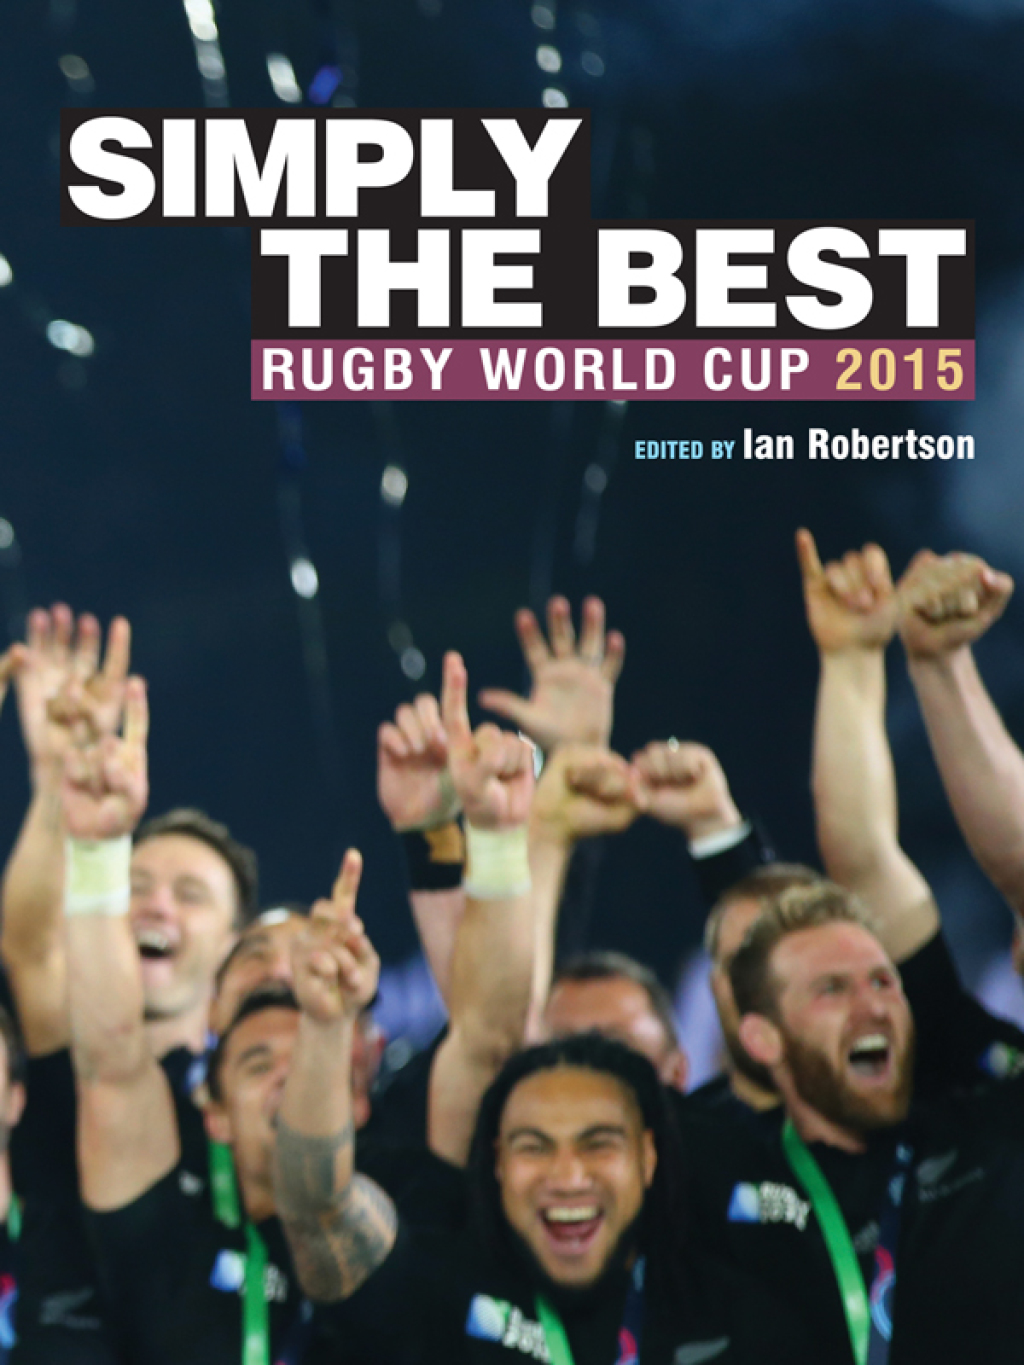 Simply The Best - Rugby World Cup 2015 (ebook) eBooks